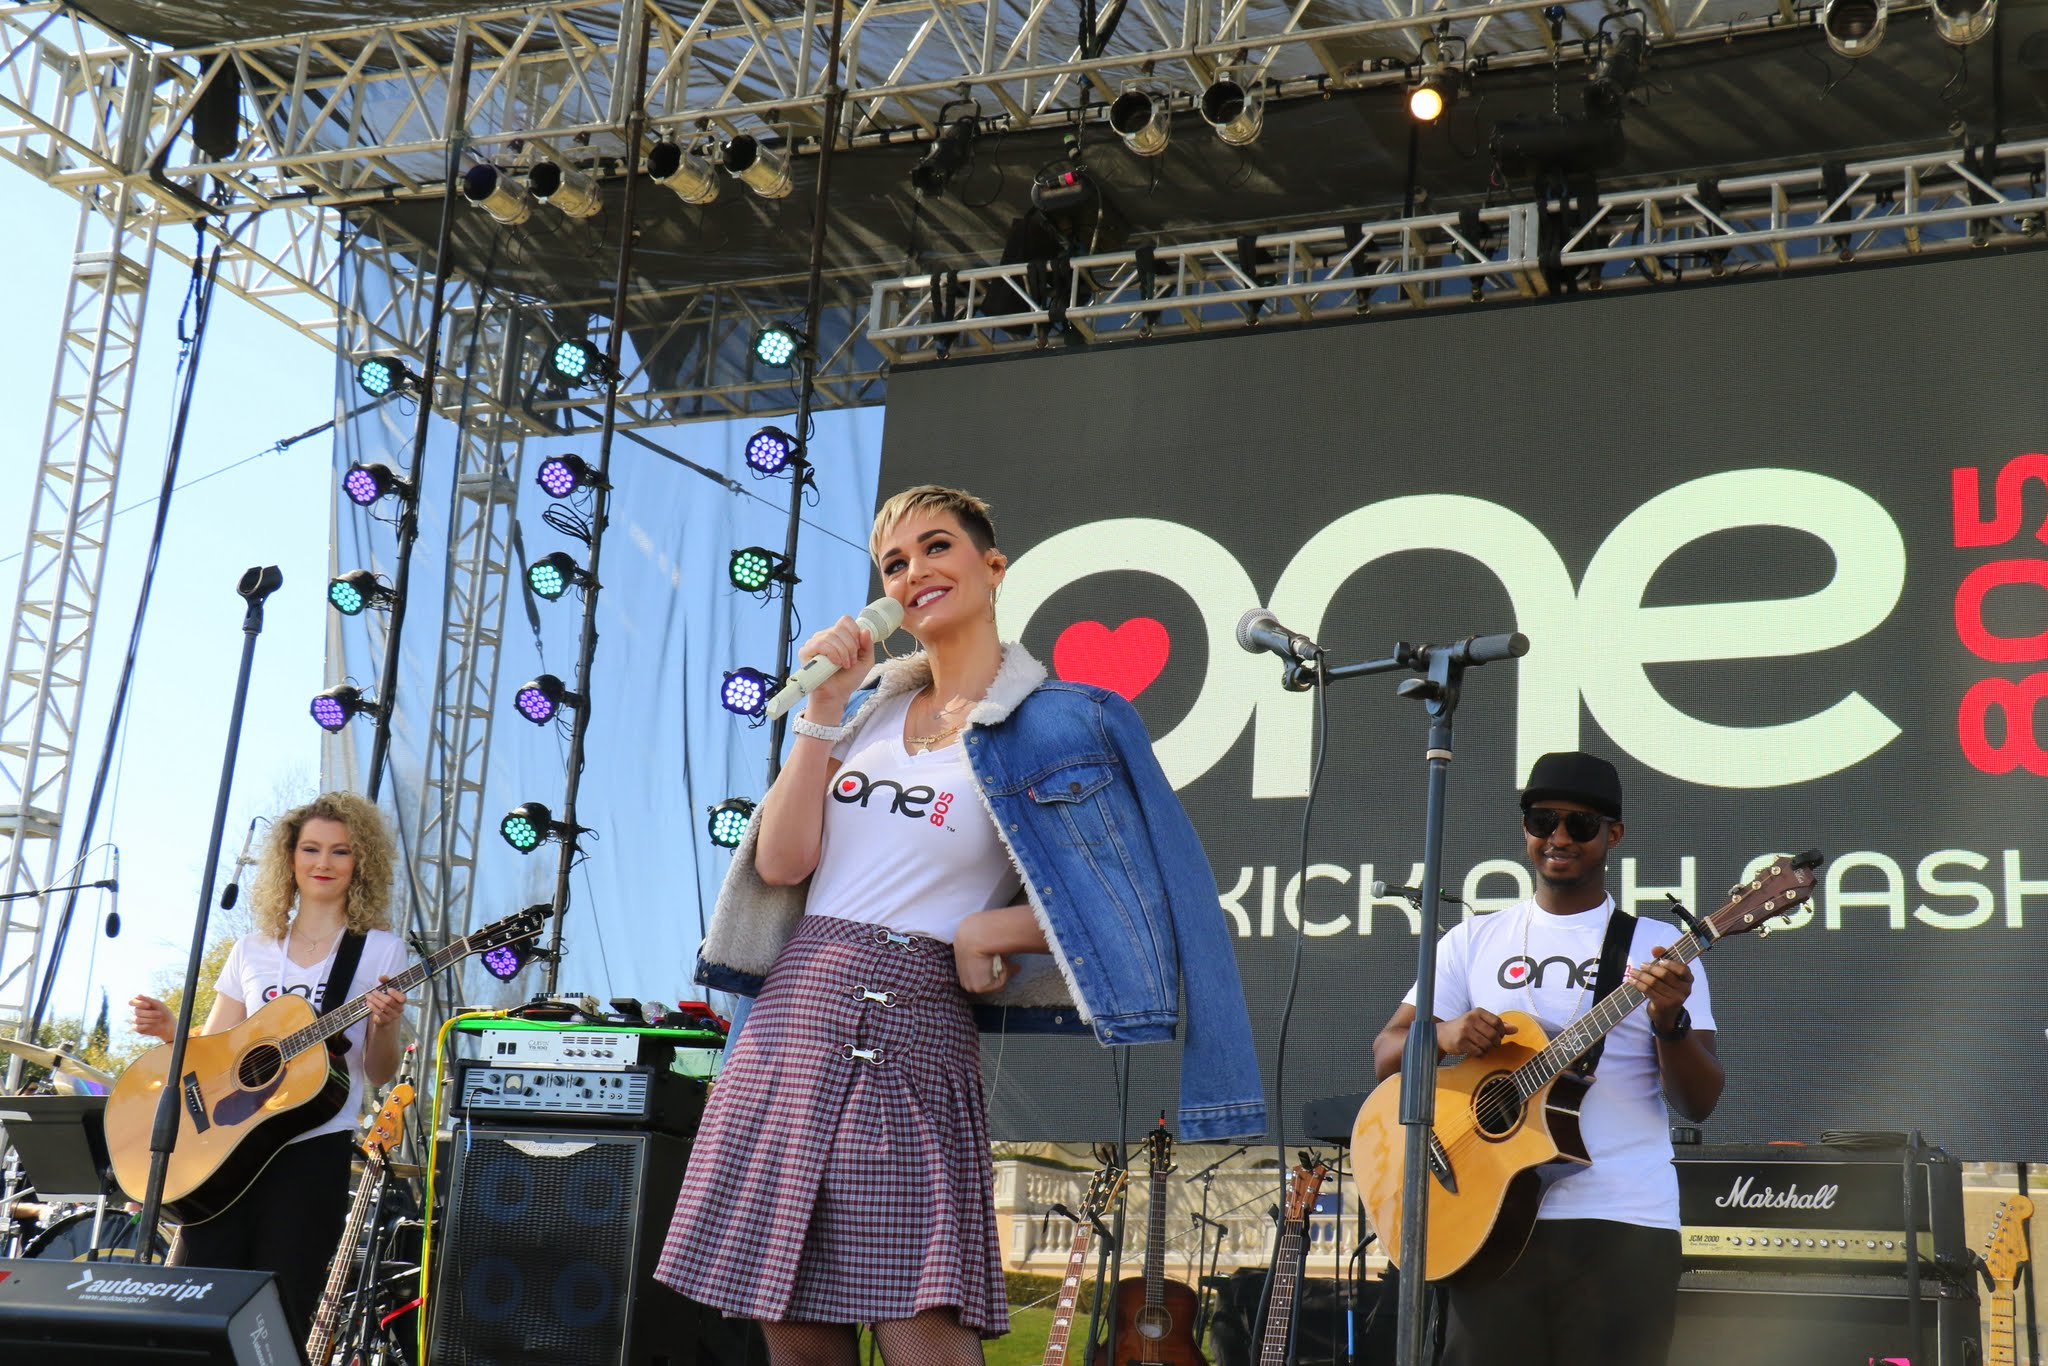 Katie Perry | Kick Ash Bash | Summerland, CA